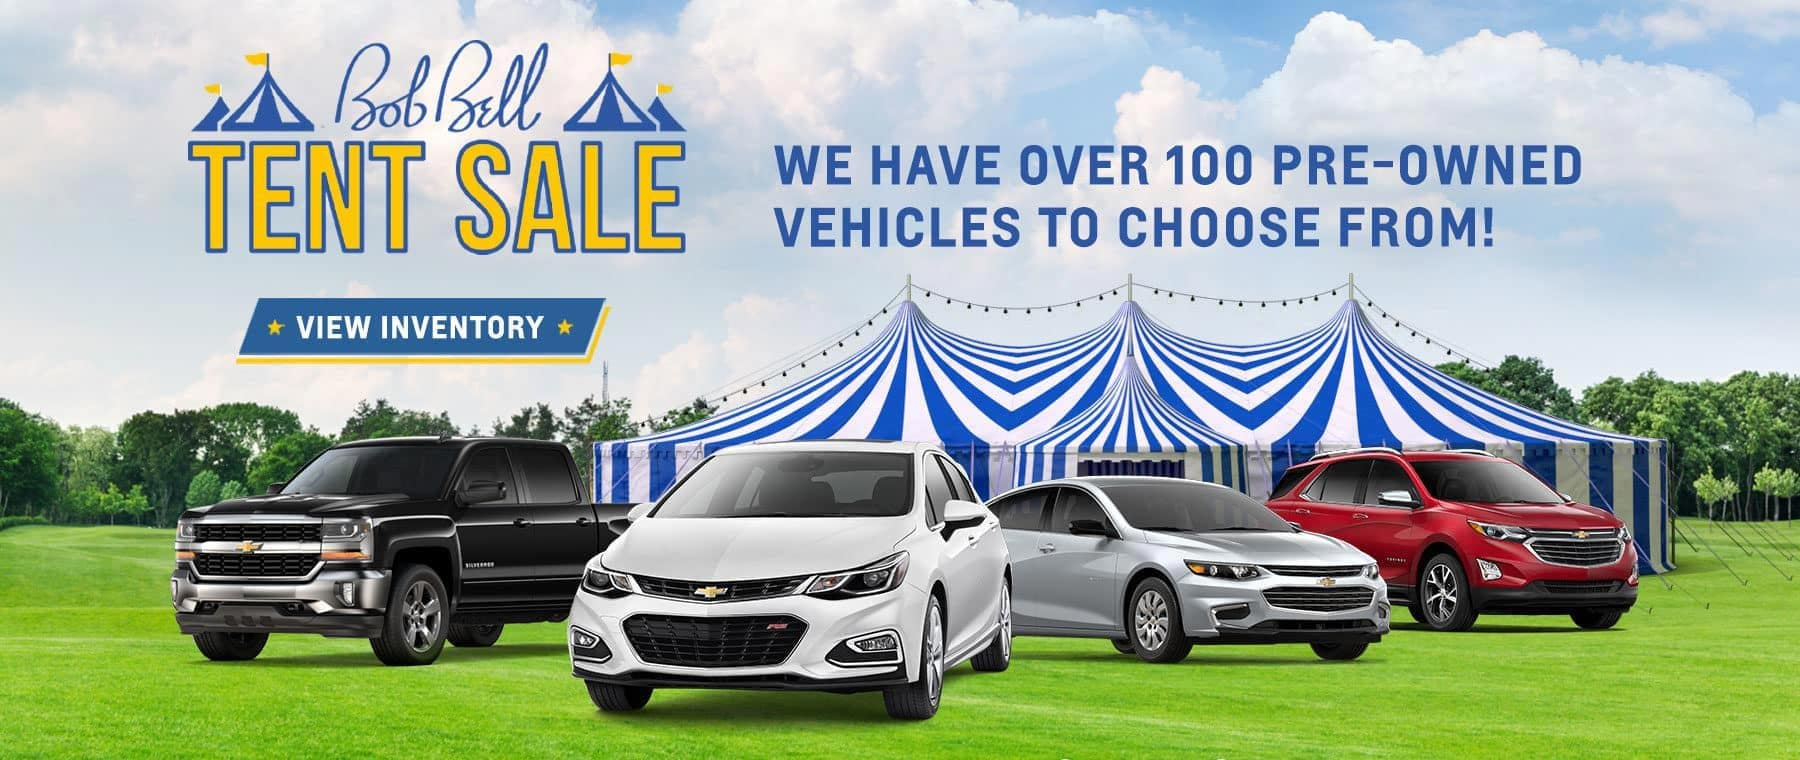 Tent-Sale-1800x760_preowned_2